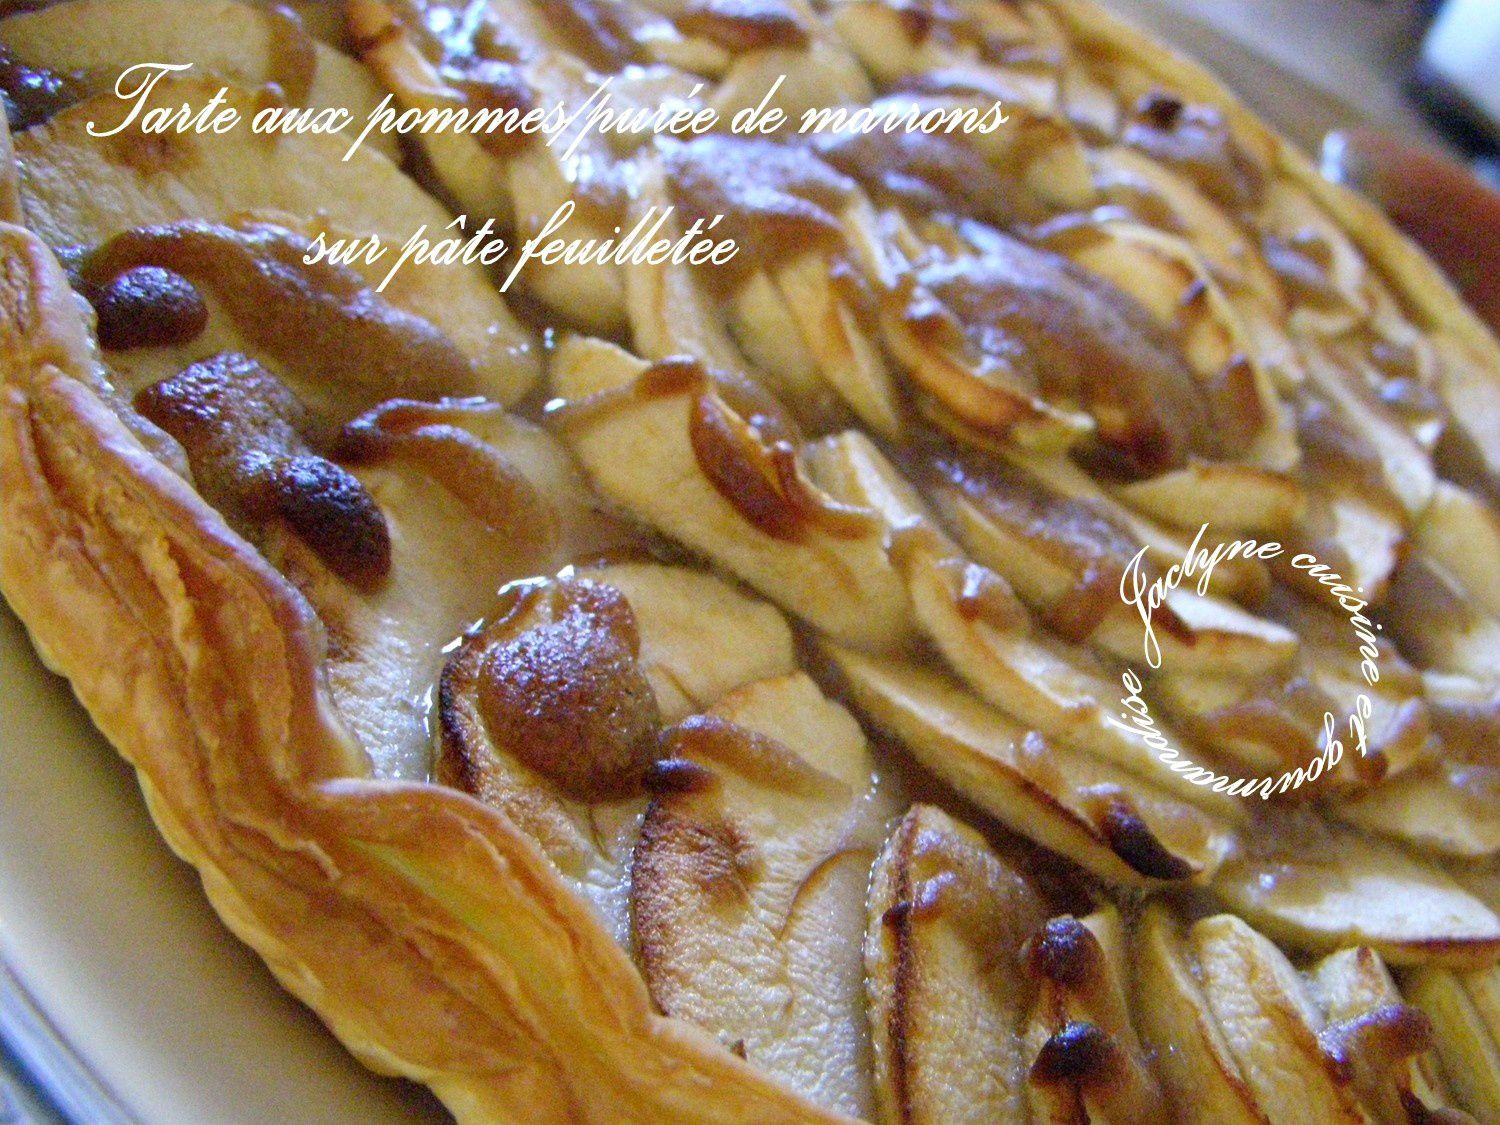 tarte aux pommes sur p te feuillet e cr me de marrons blogs de cuisine. Black Bedroom Furniture Sets. Home Design Ideas